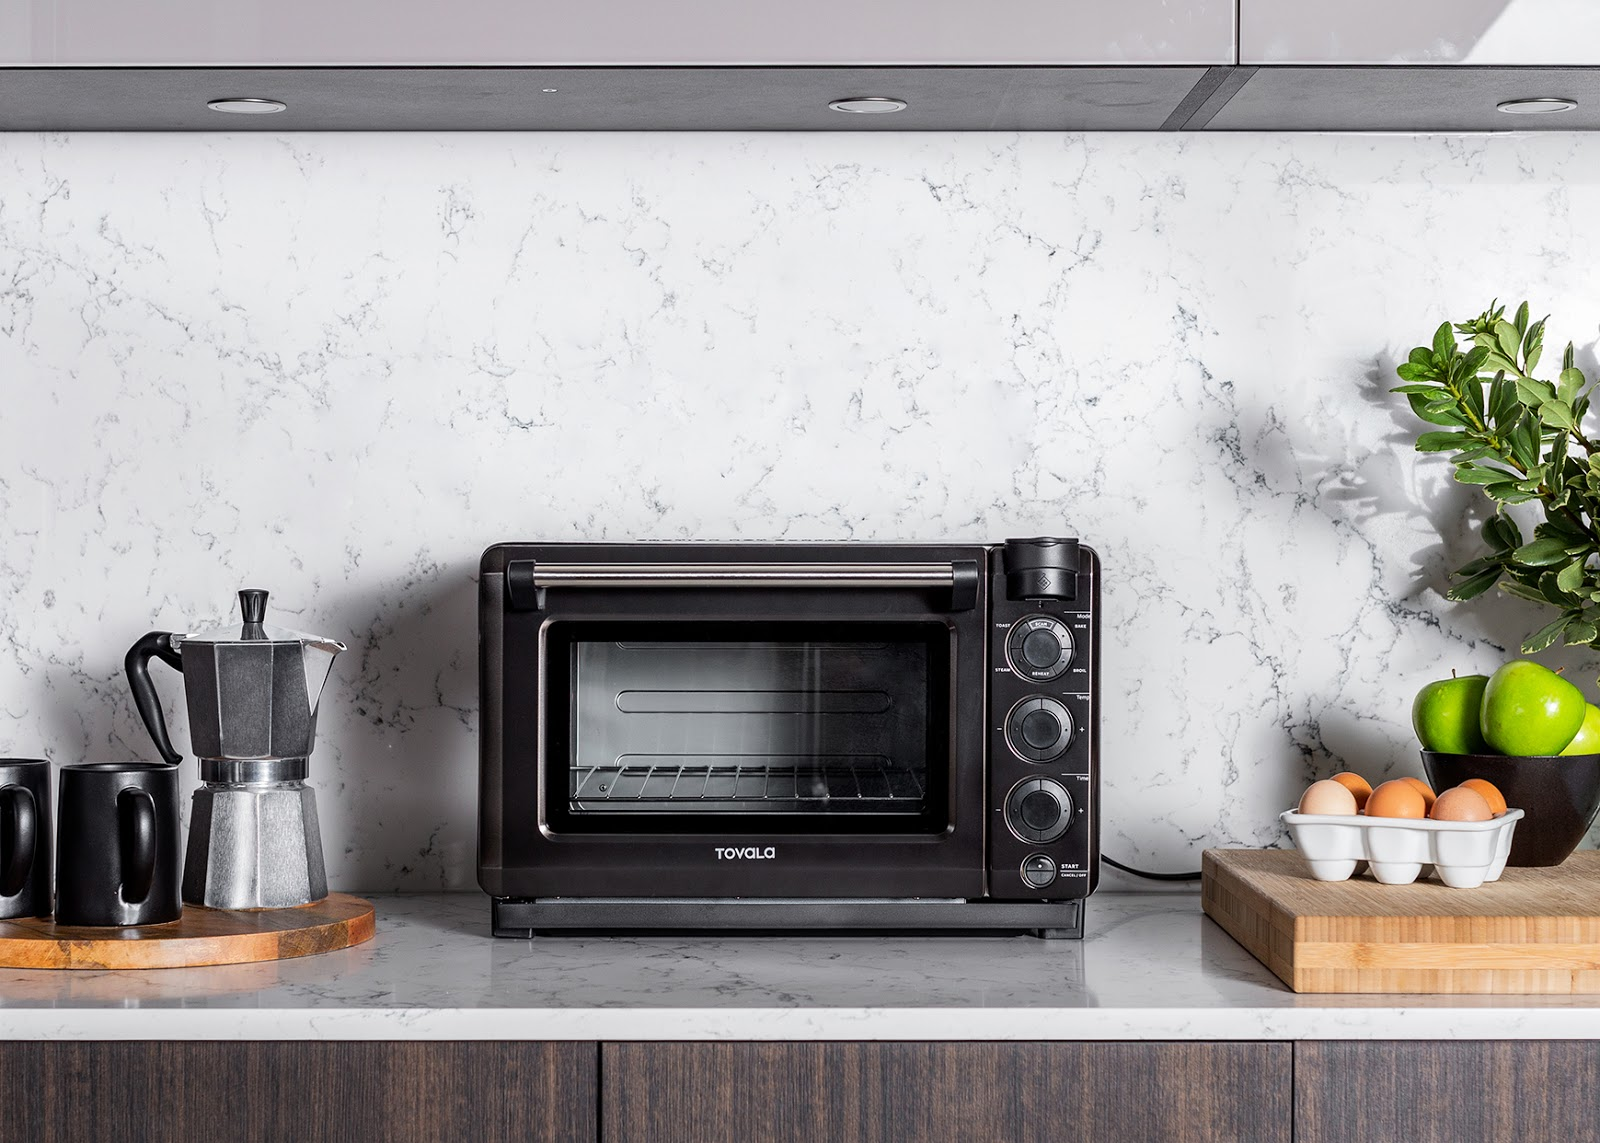 Steam convection oven: the Tovala Steam Oven on a modern countertop